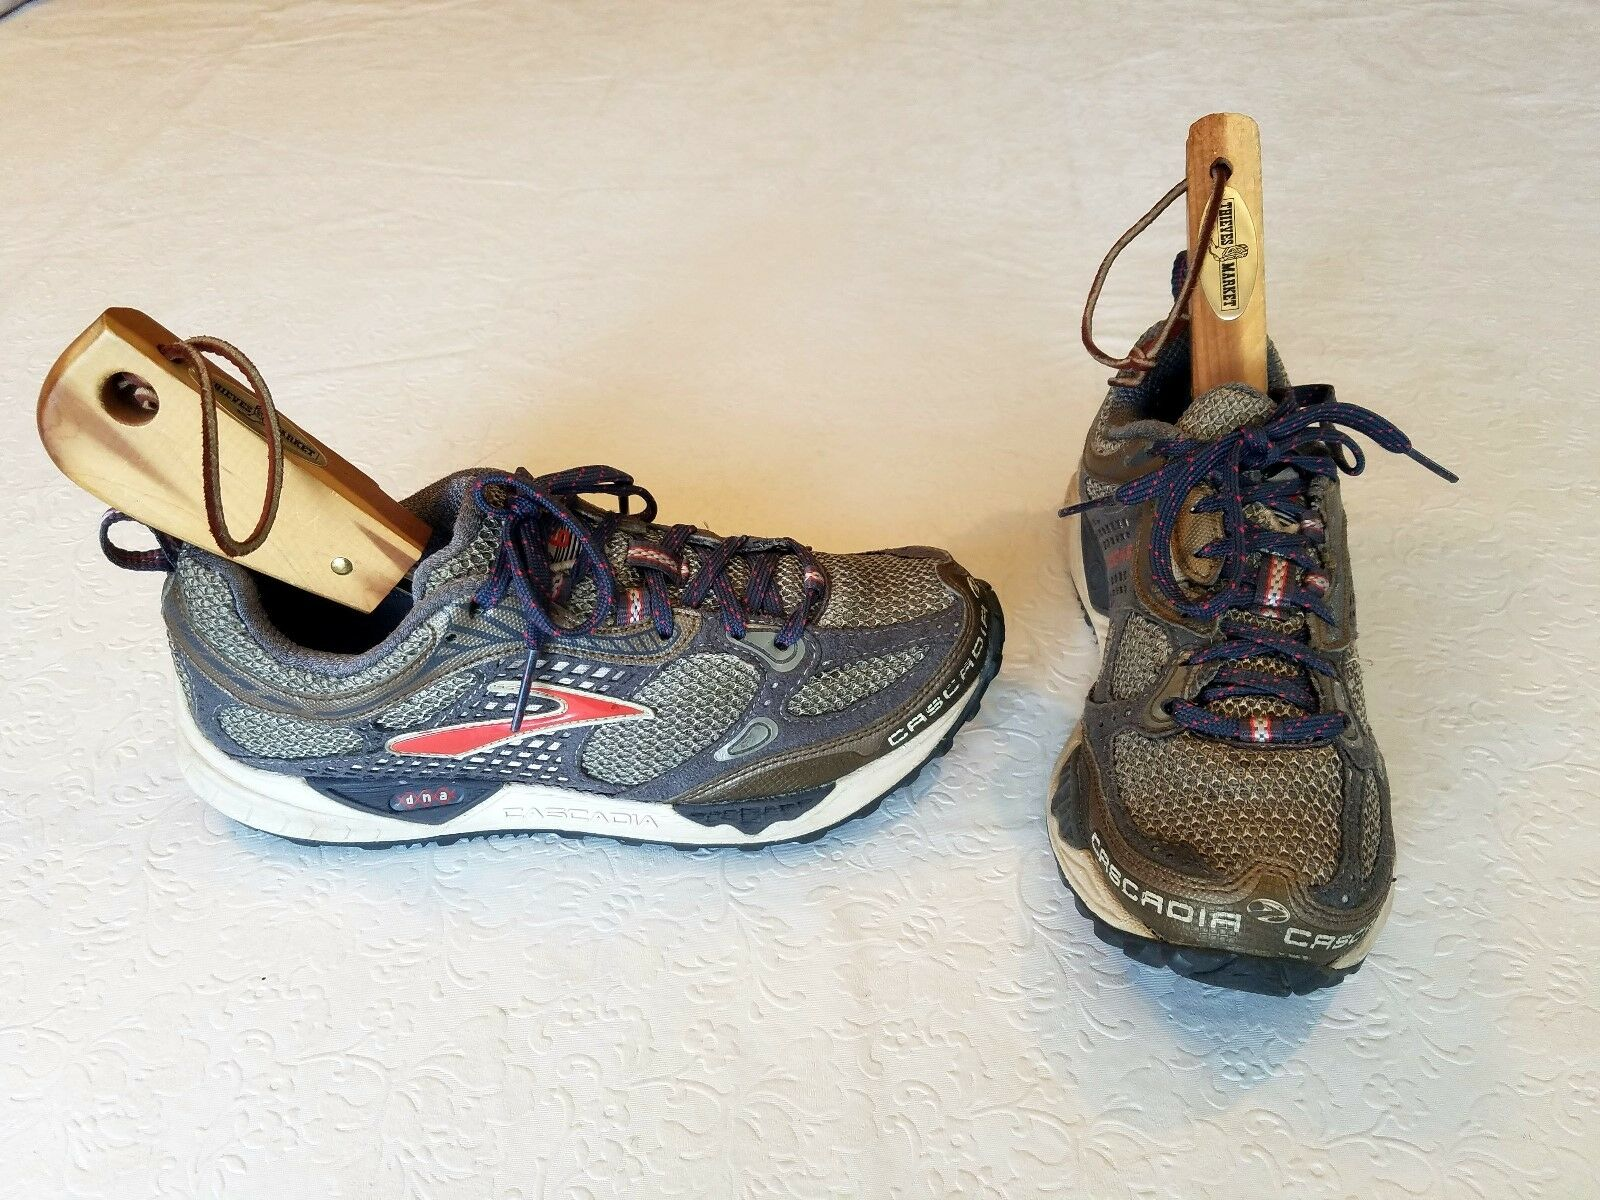 WOMEN'S - BROOKS - CASCADIA 6 - TRAIL RUNNING  SHOES - SZ. 7.5